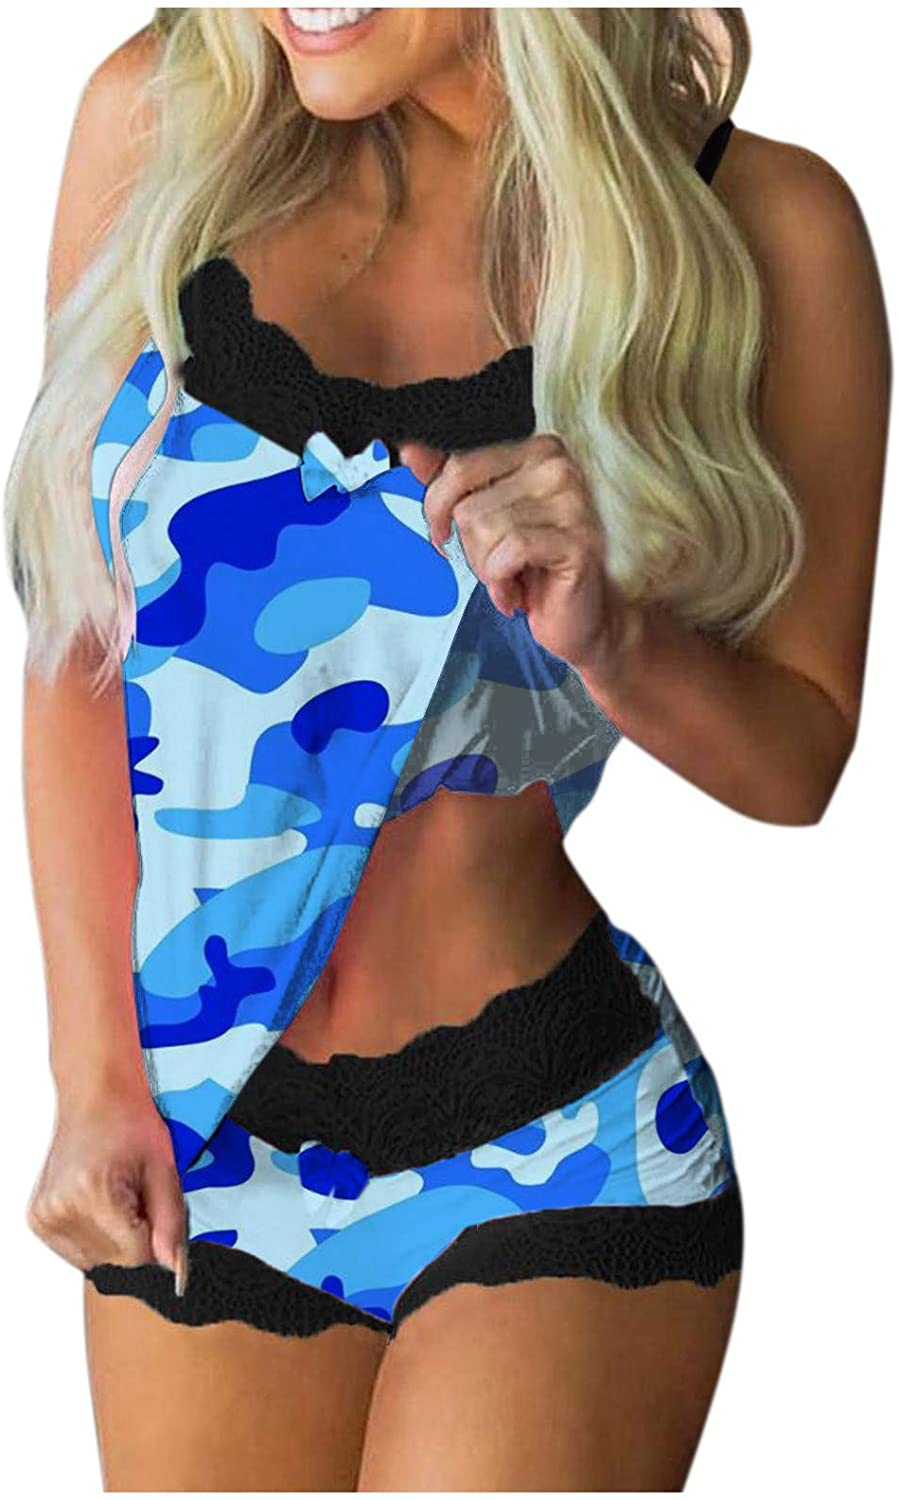 Lingerie Set for Women, Women's Printed Two Piece Outfit Short Sleeve Crewneck Pullover Tops and Pants Camouflage